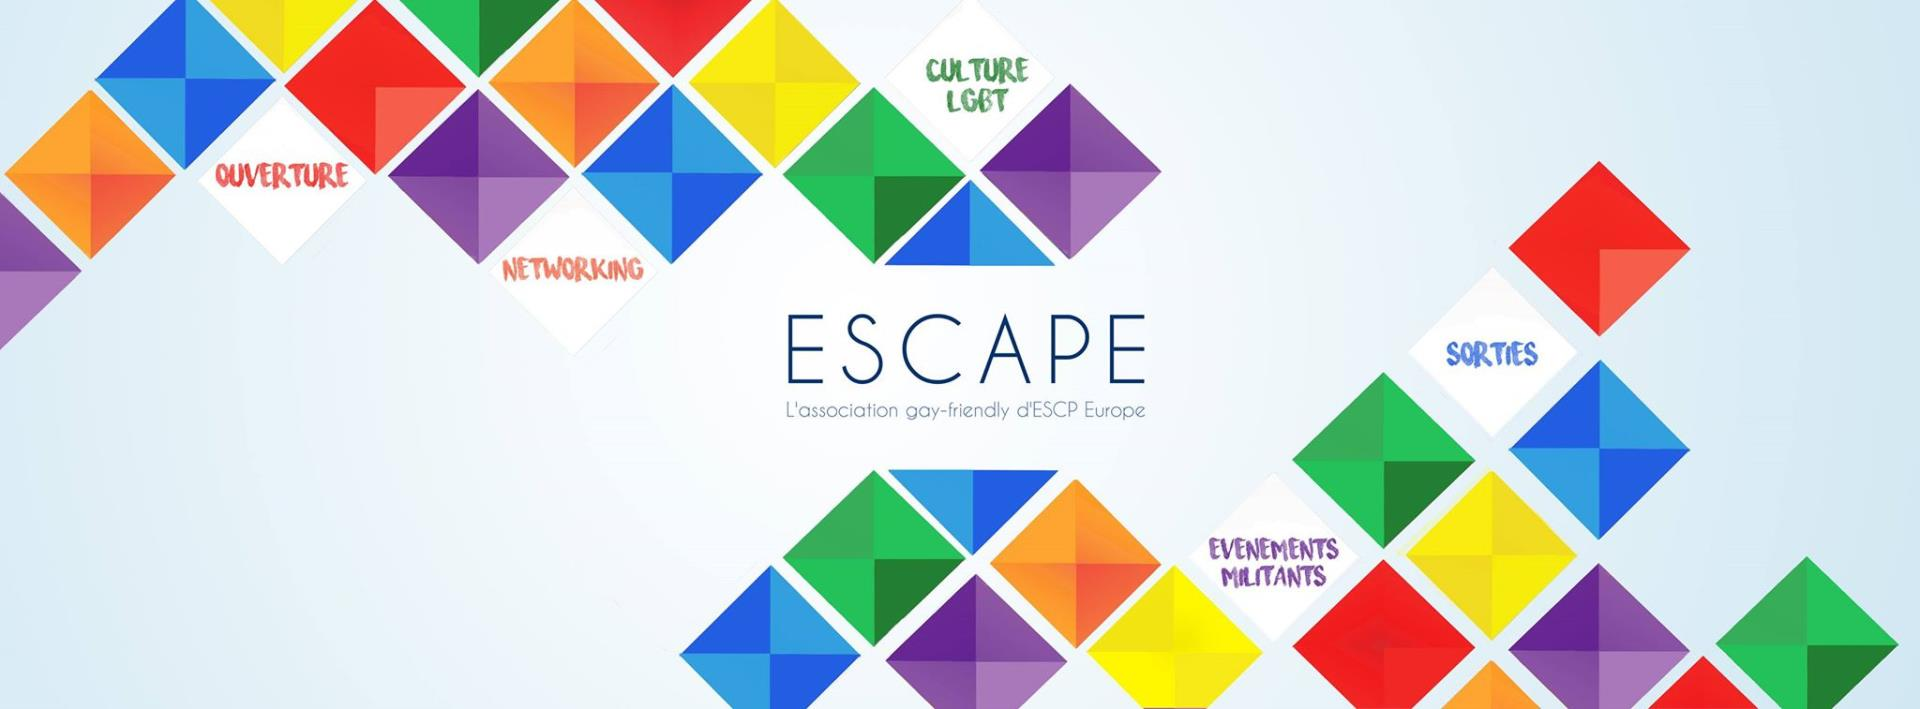 ADHÉSIONS ESCAPE ESCP EUROPE - ESCAPE